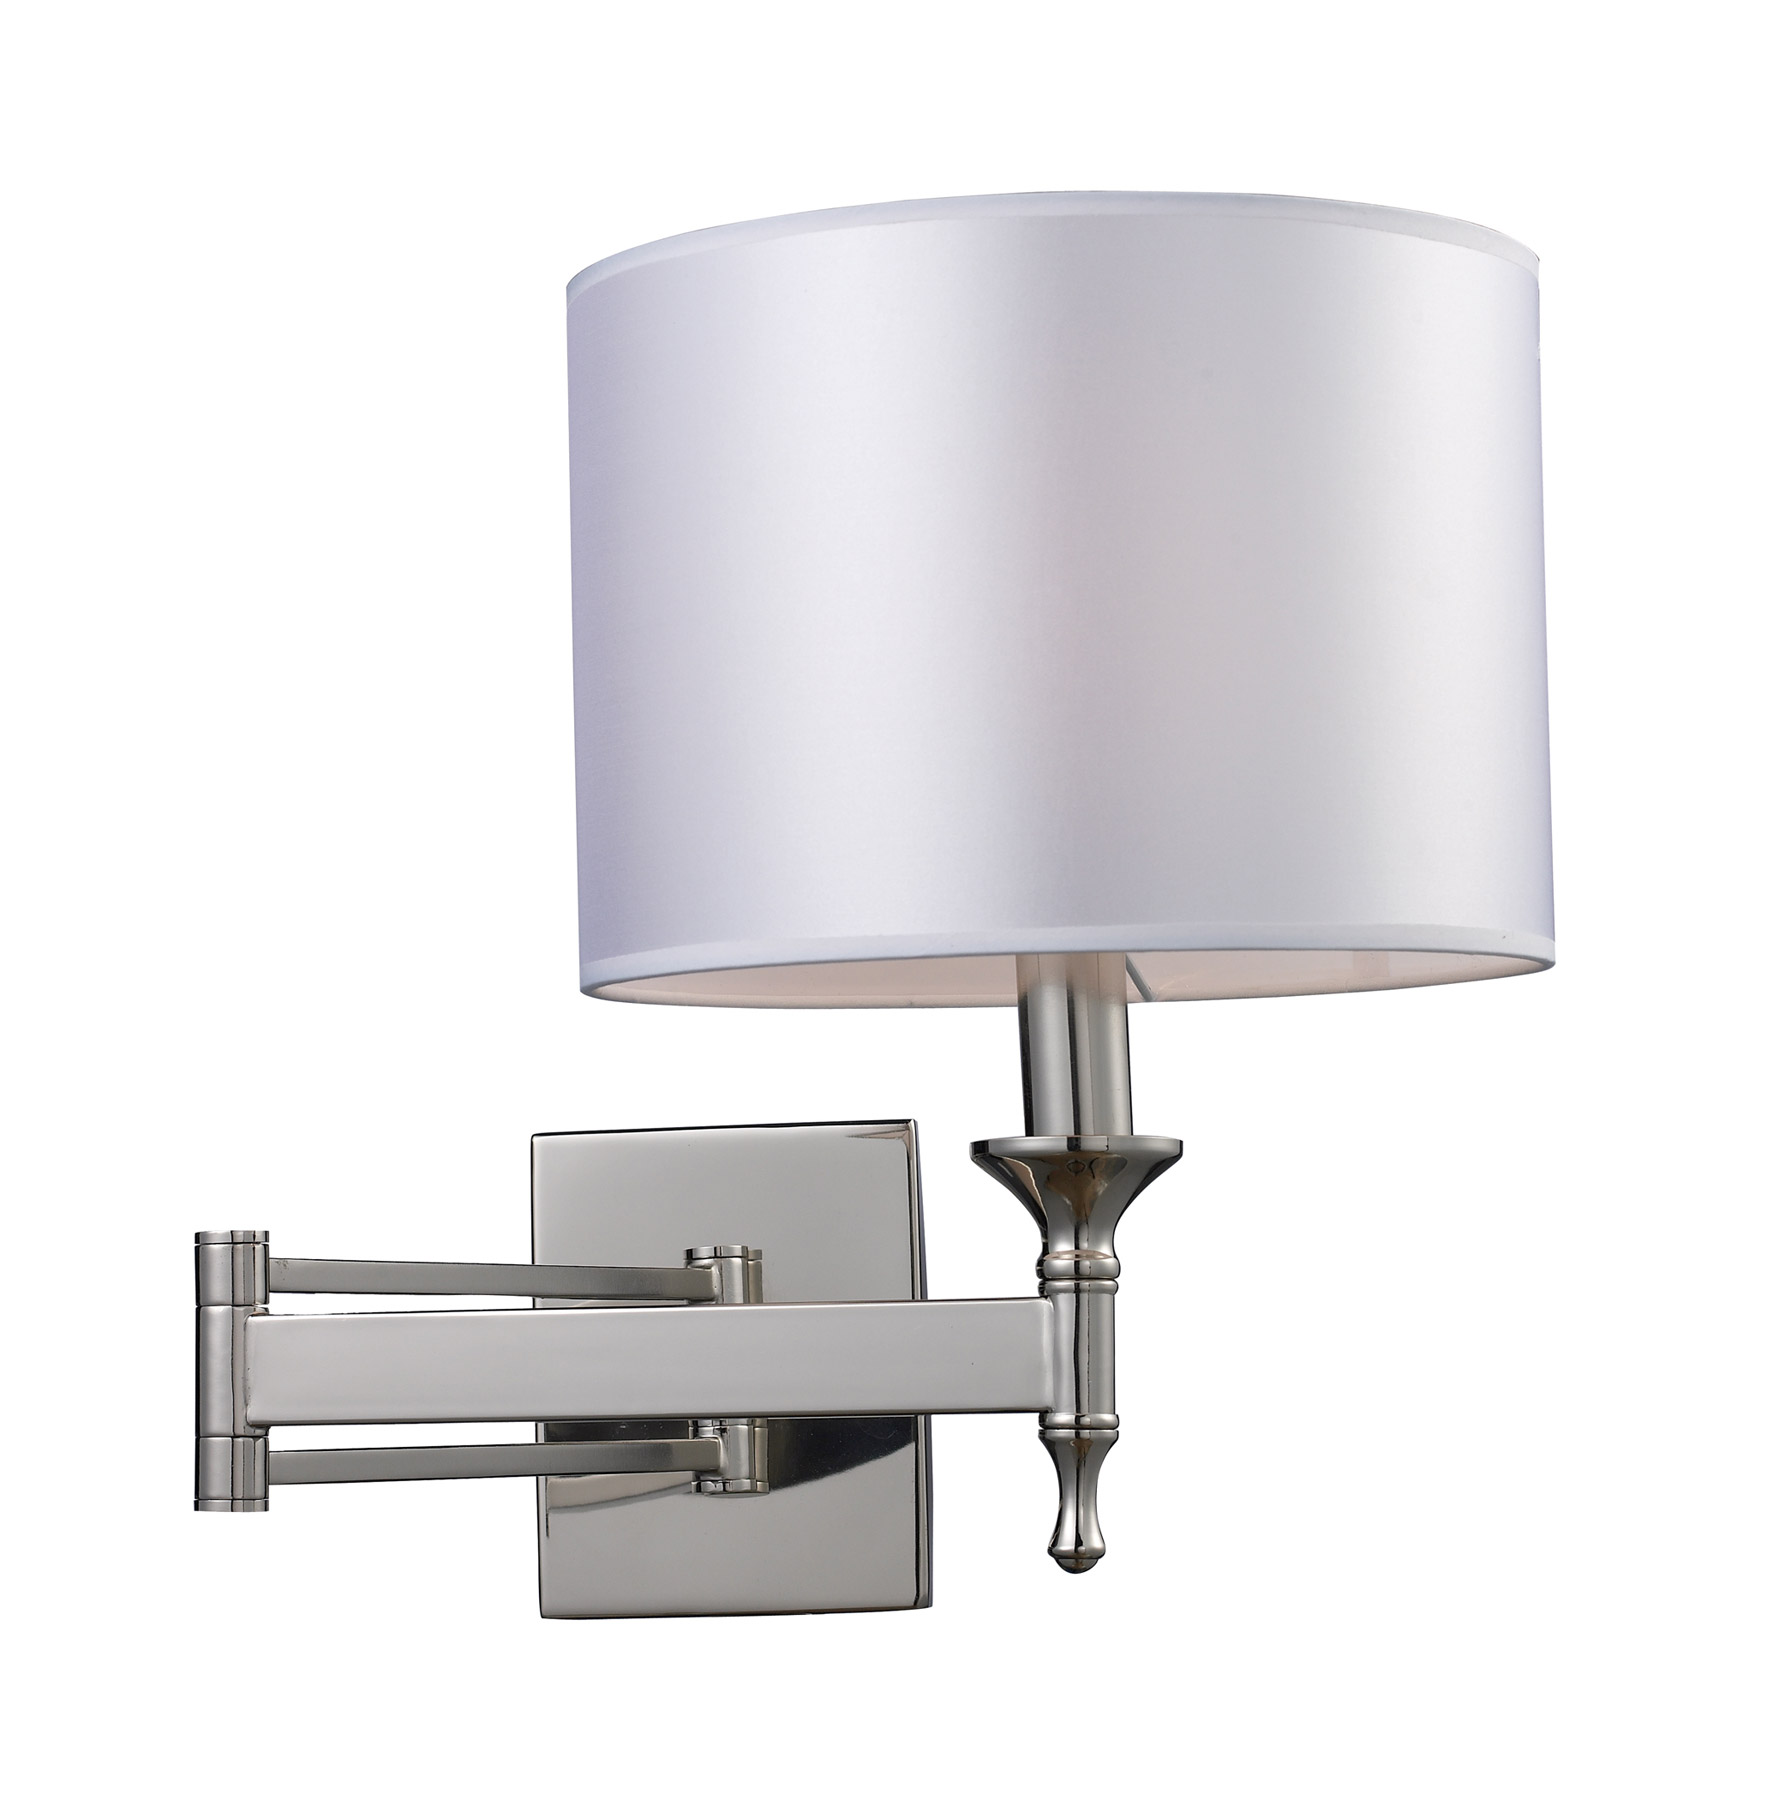 Lighting 101601 Pembroke Swing Arm Wall Sconce